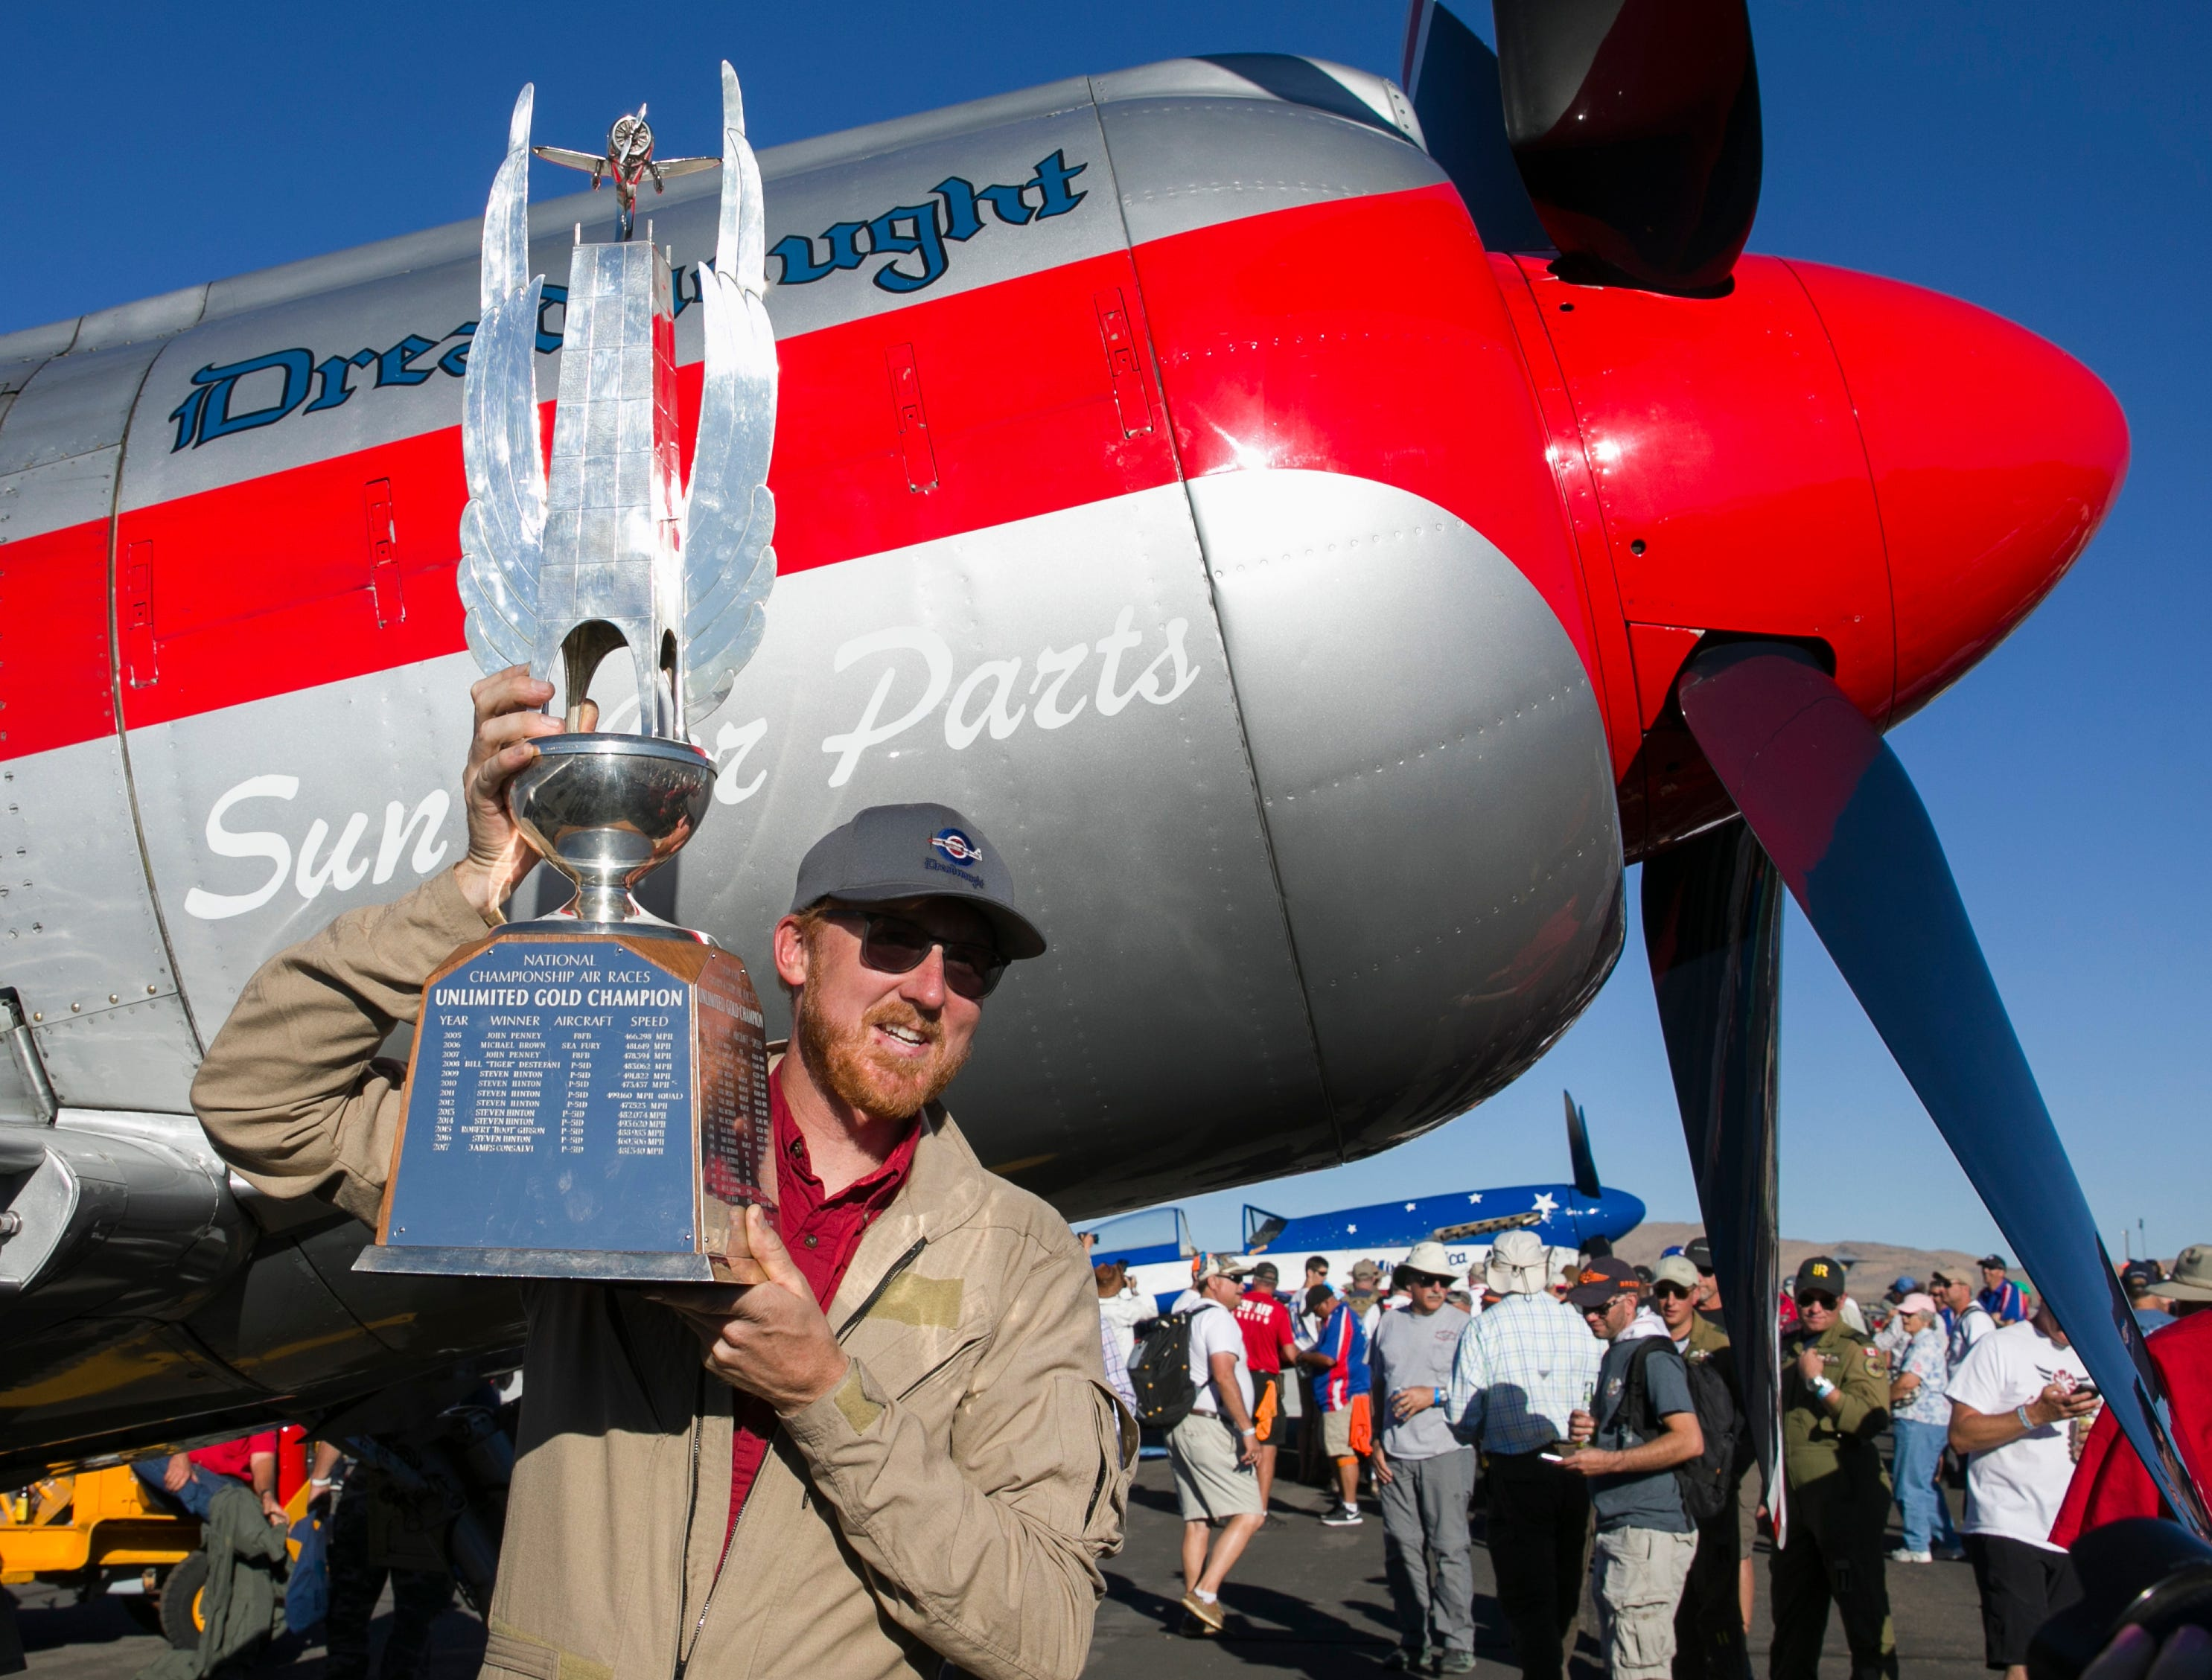 Joel Swager, Unlimited Gold Champion, holds up the trophy during the Reno National Championship Air Races on Sunday, Sept. 16, 2018.